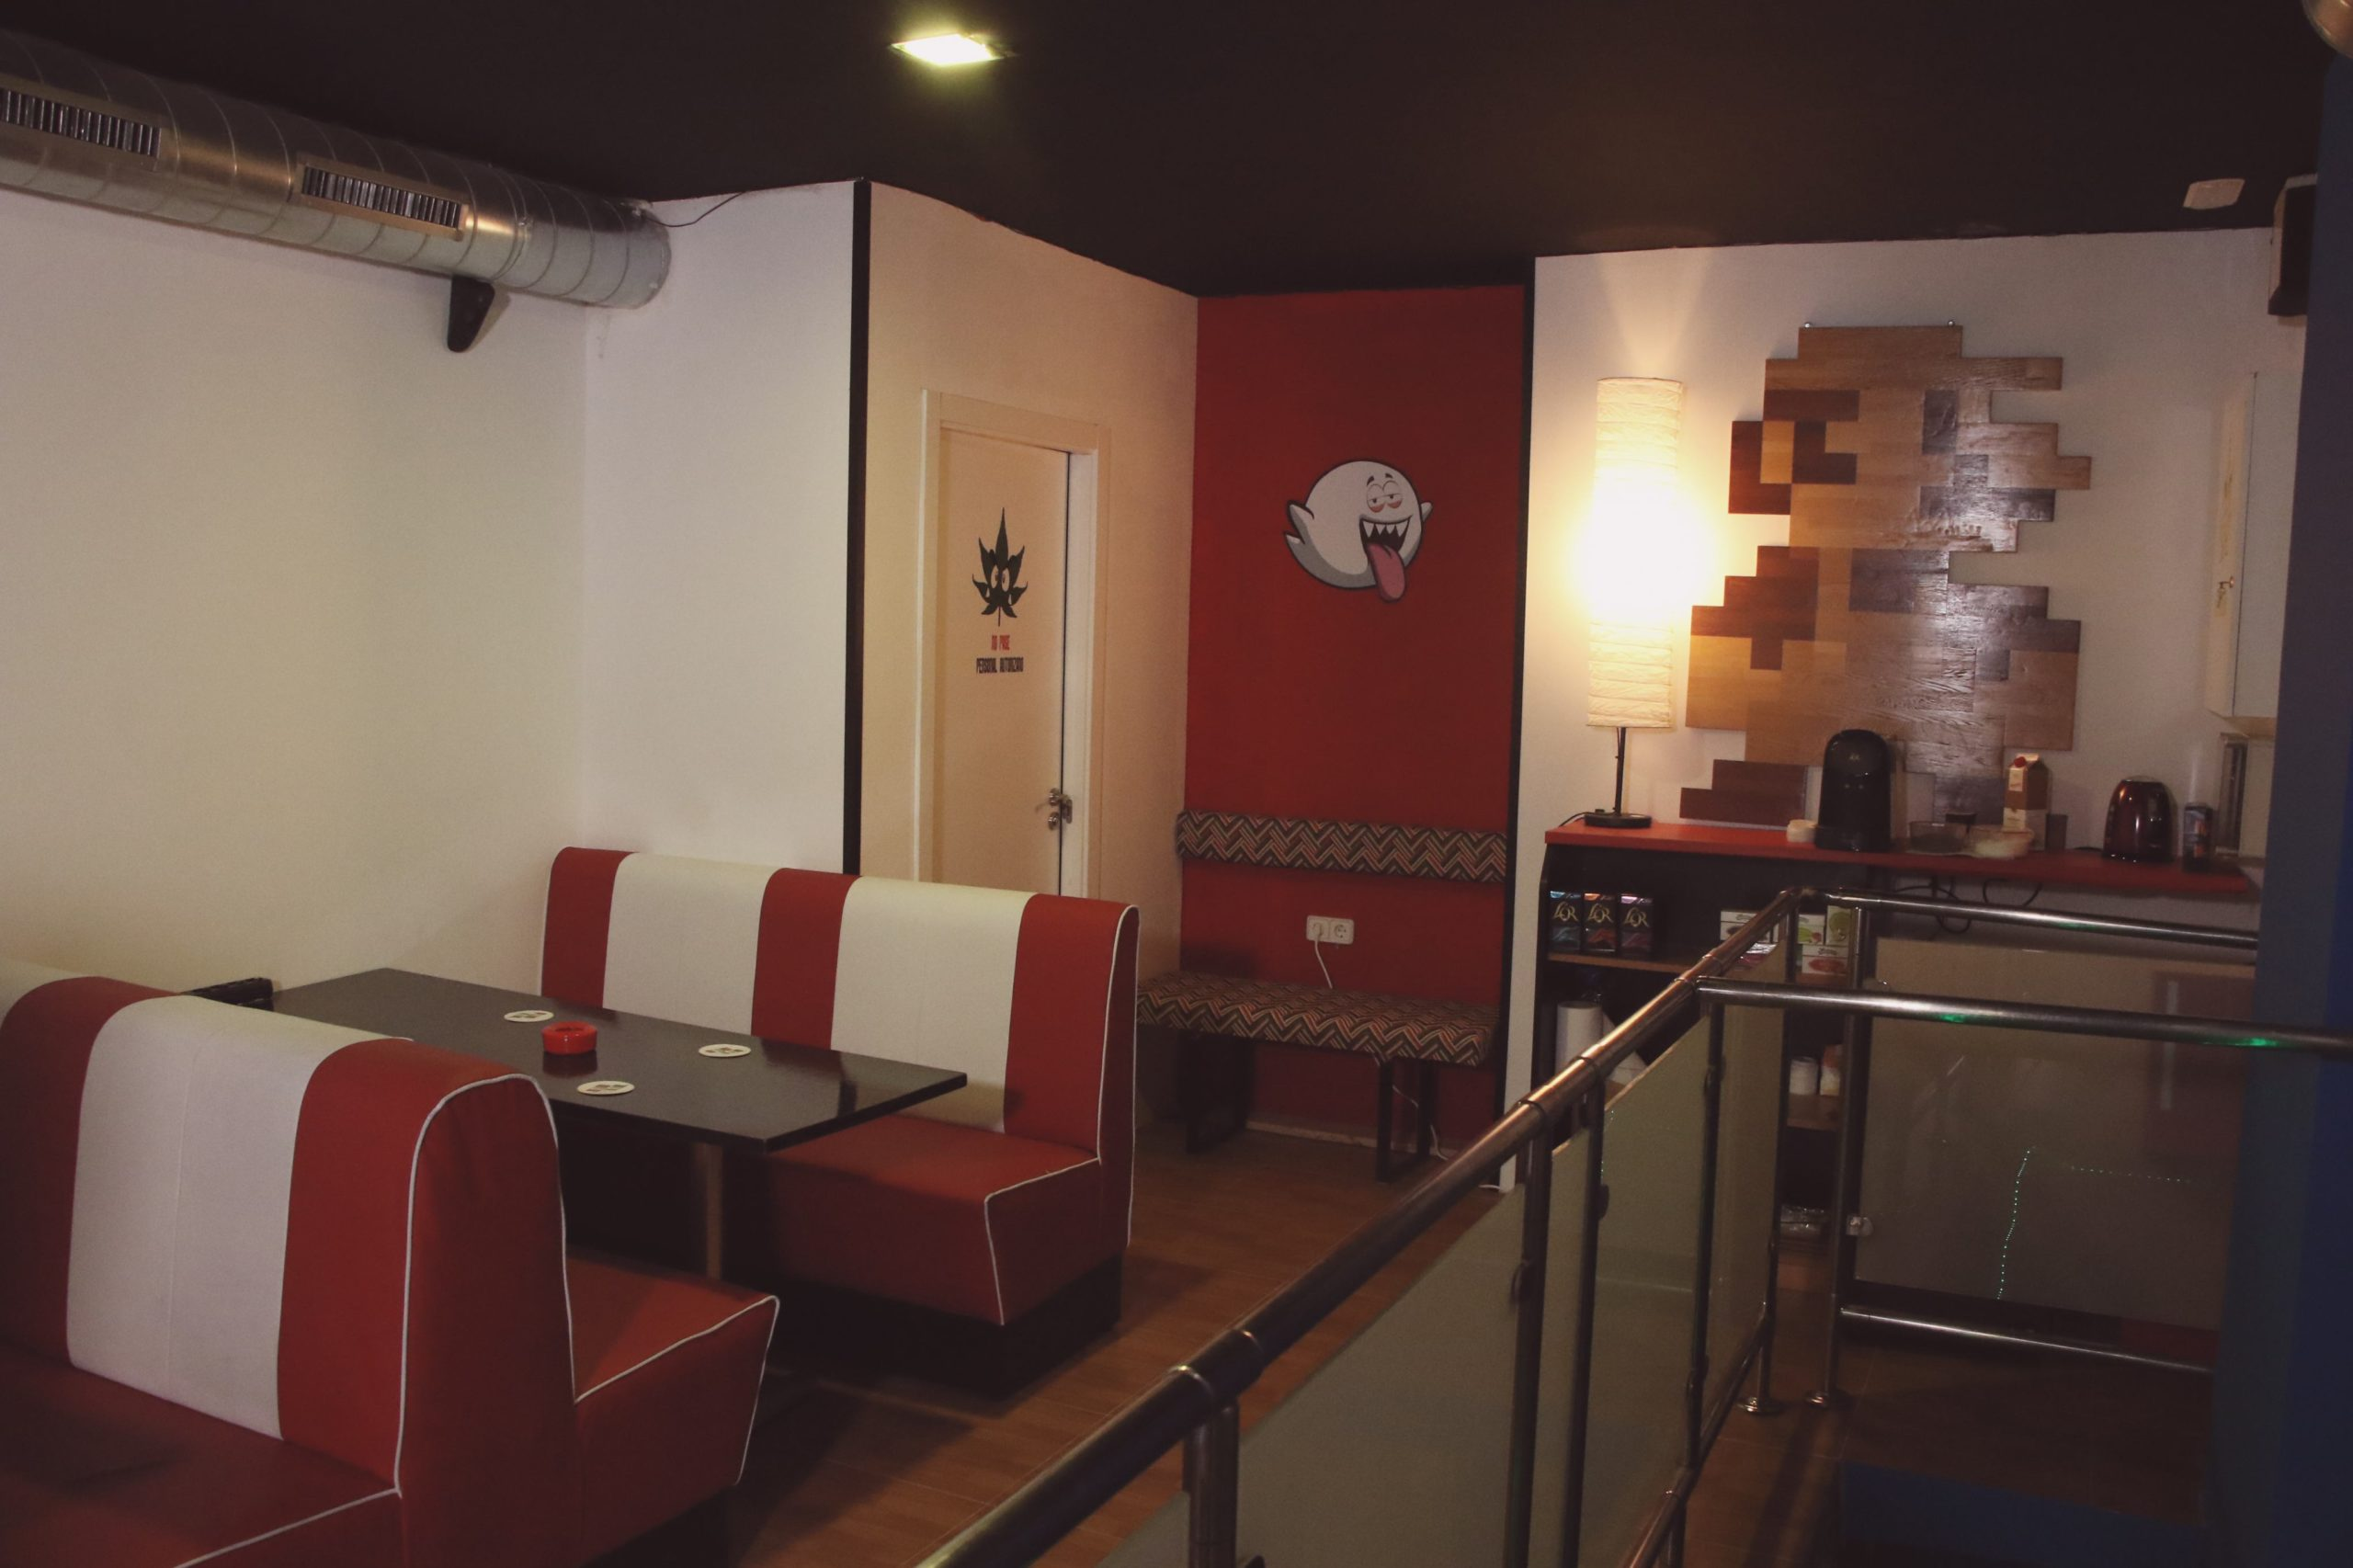 room decorated with video games theme with booths and tables